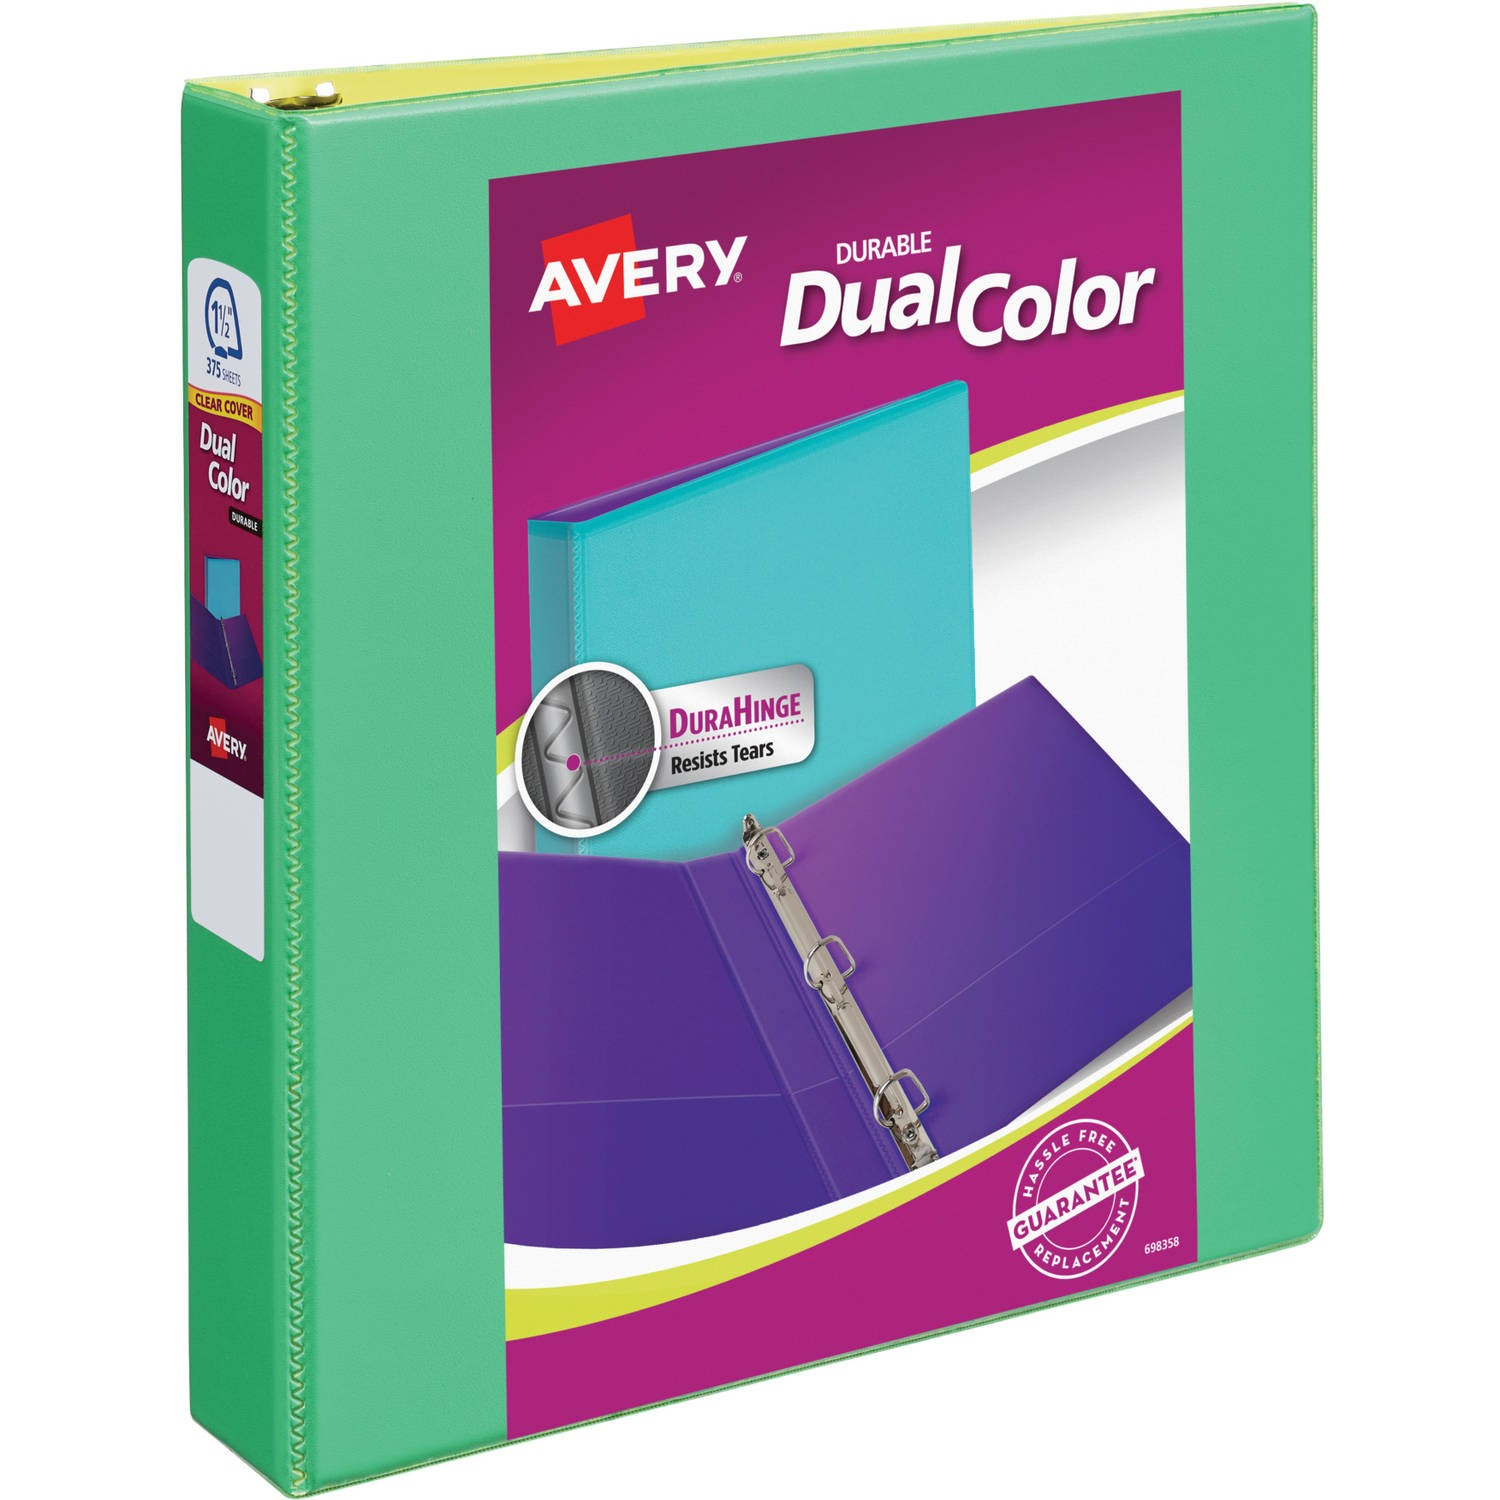 """Avery Durable View Dual Color Binder, 1.5"""", Assorted Colors"""